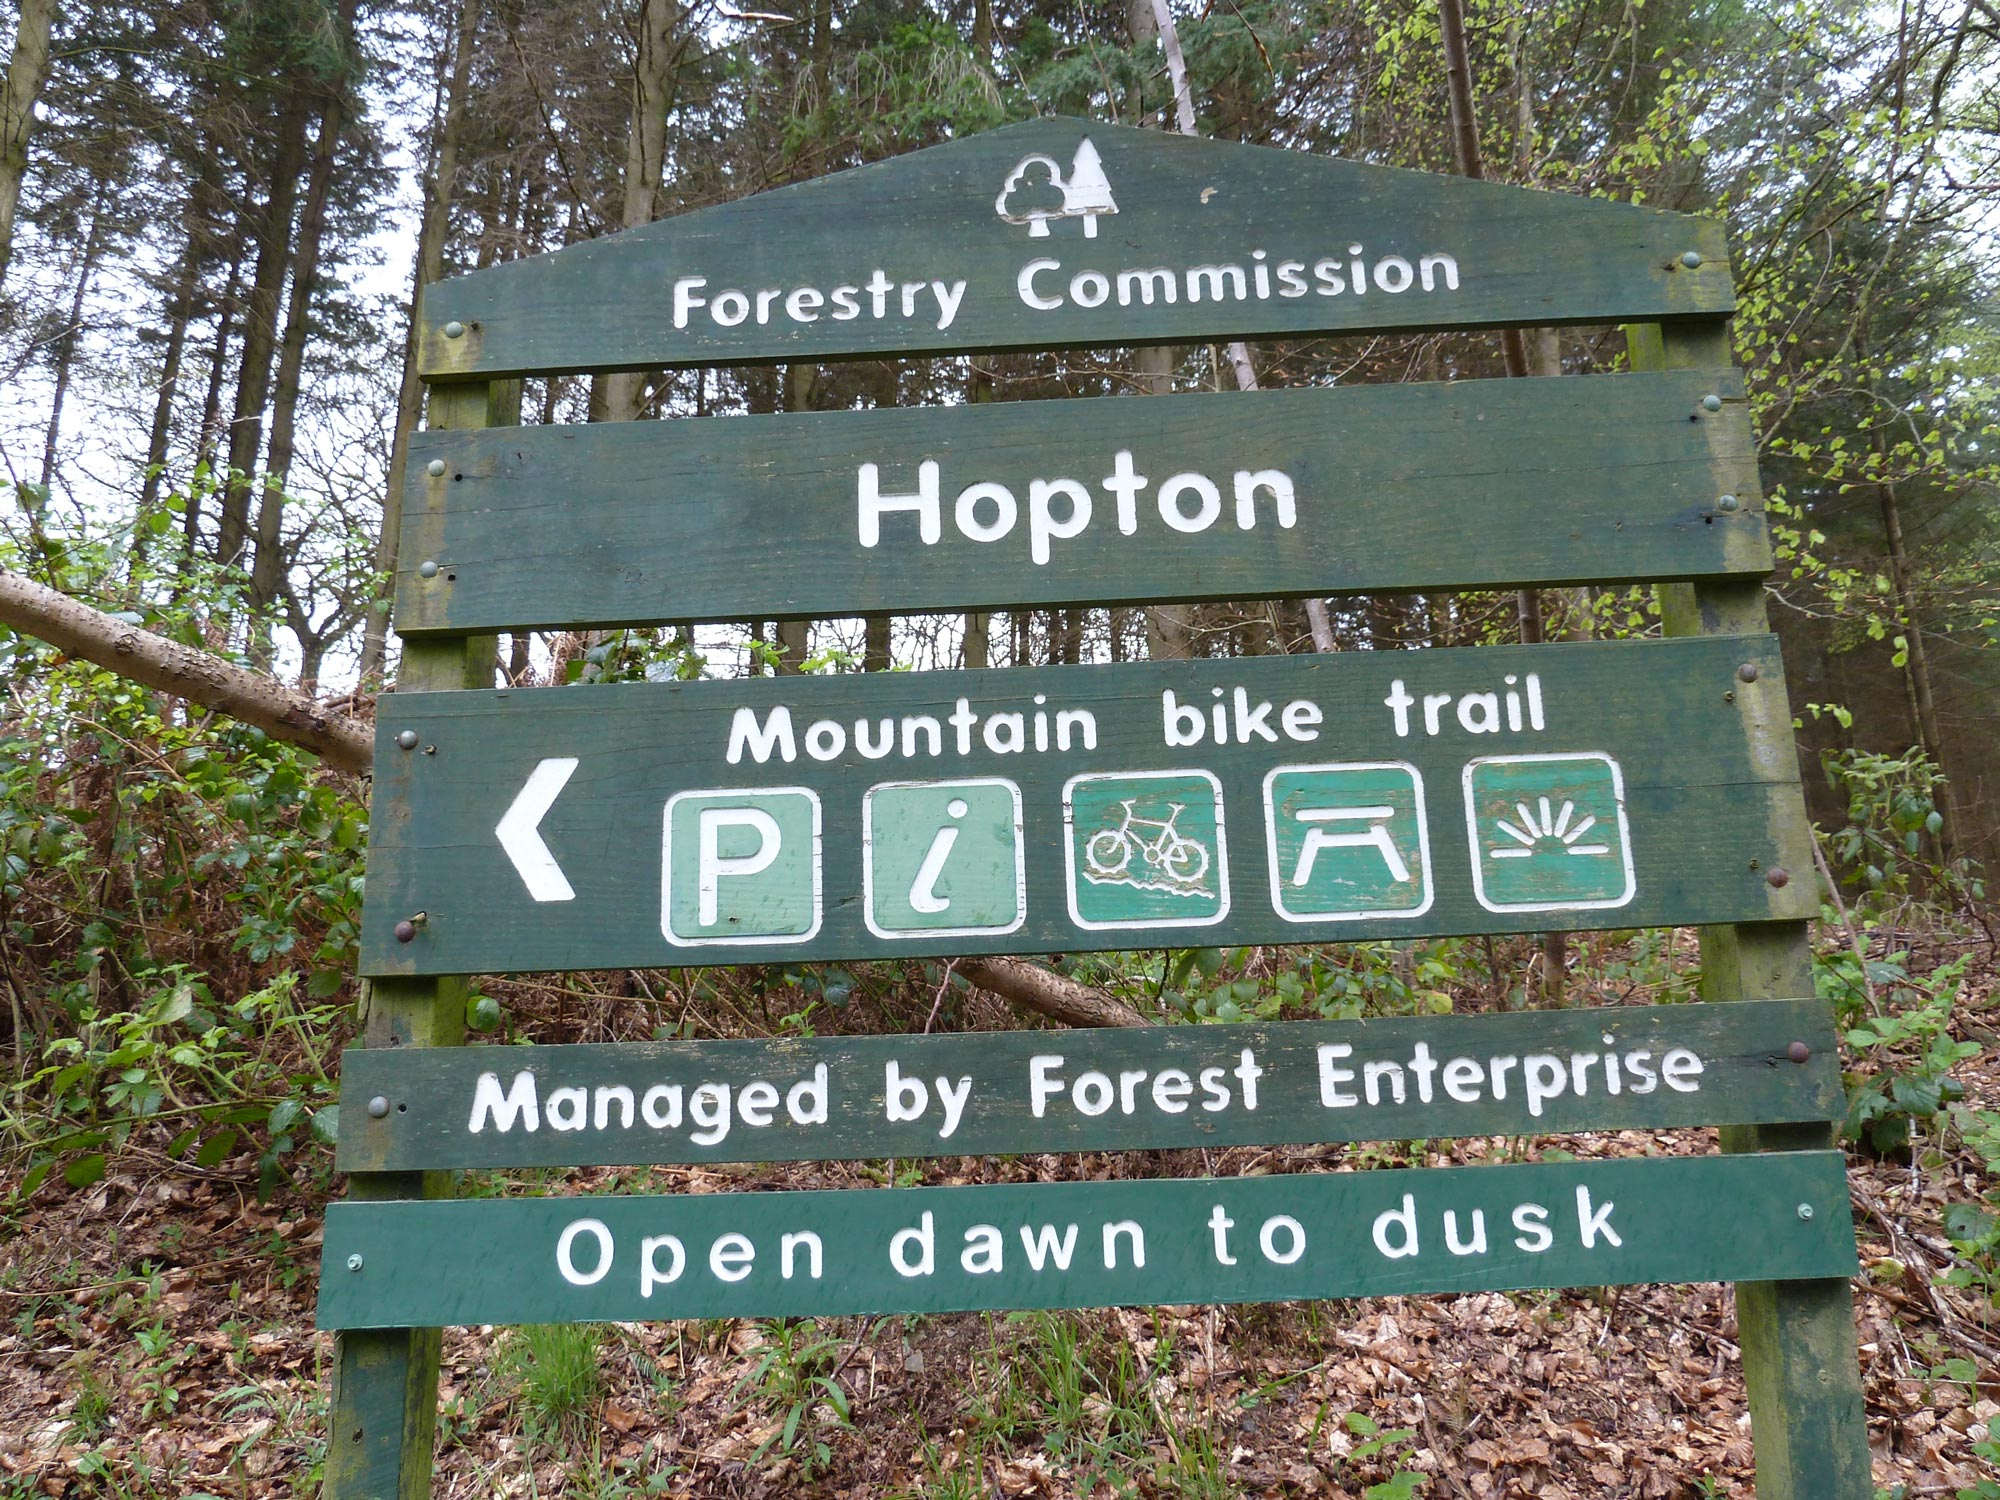 Hopton Mountain Bike Trail